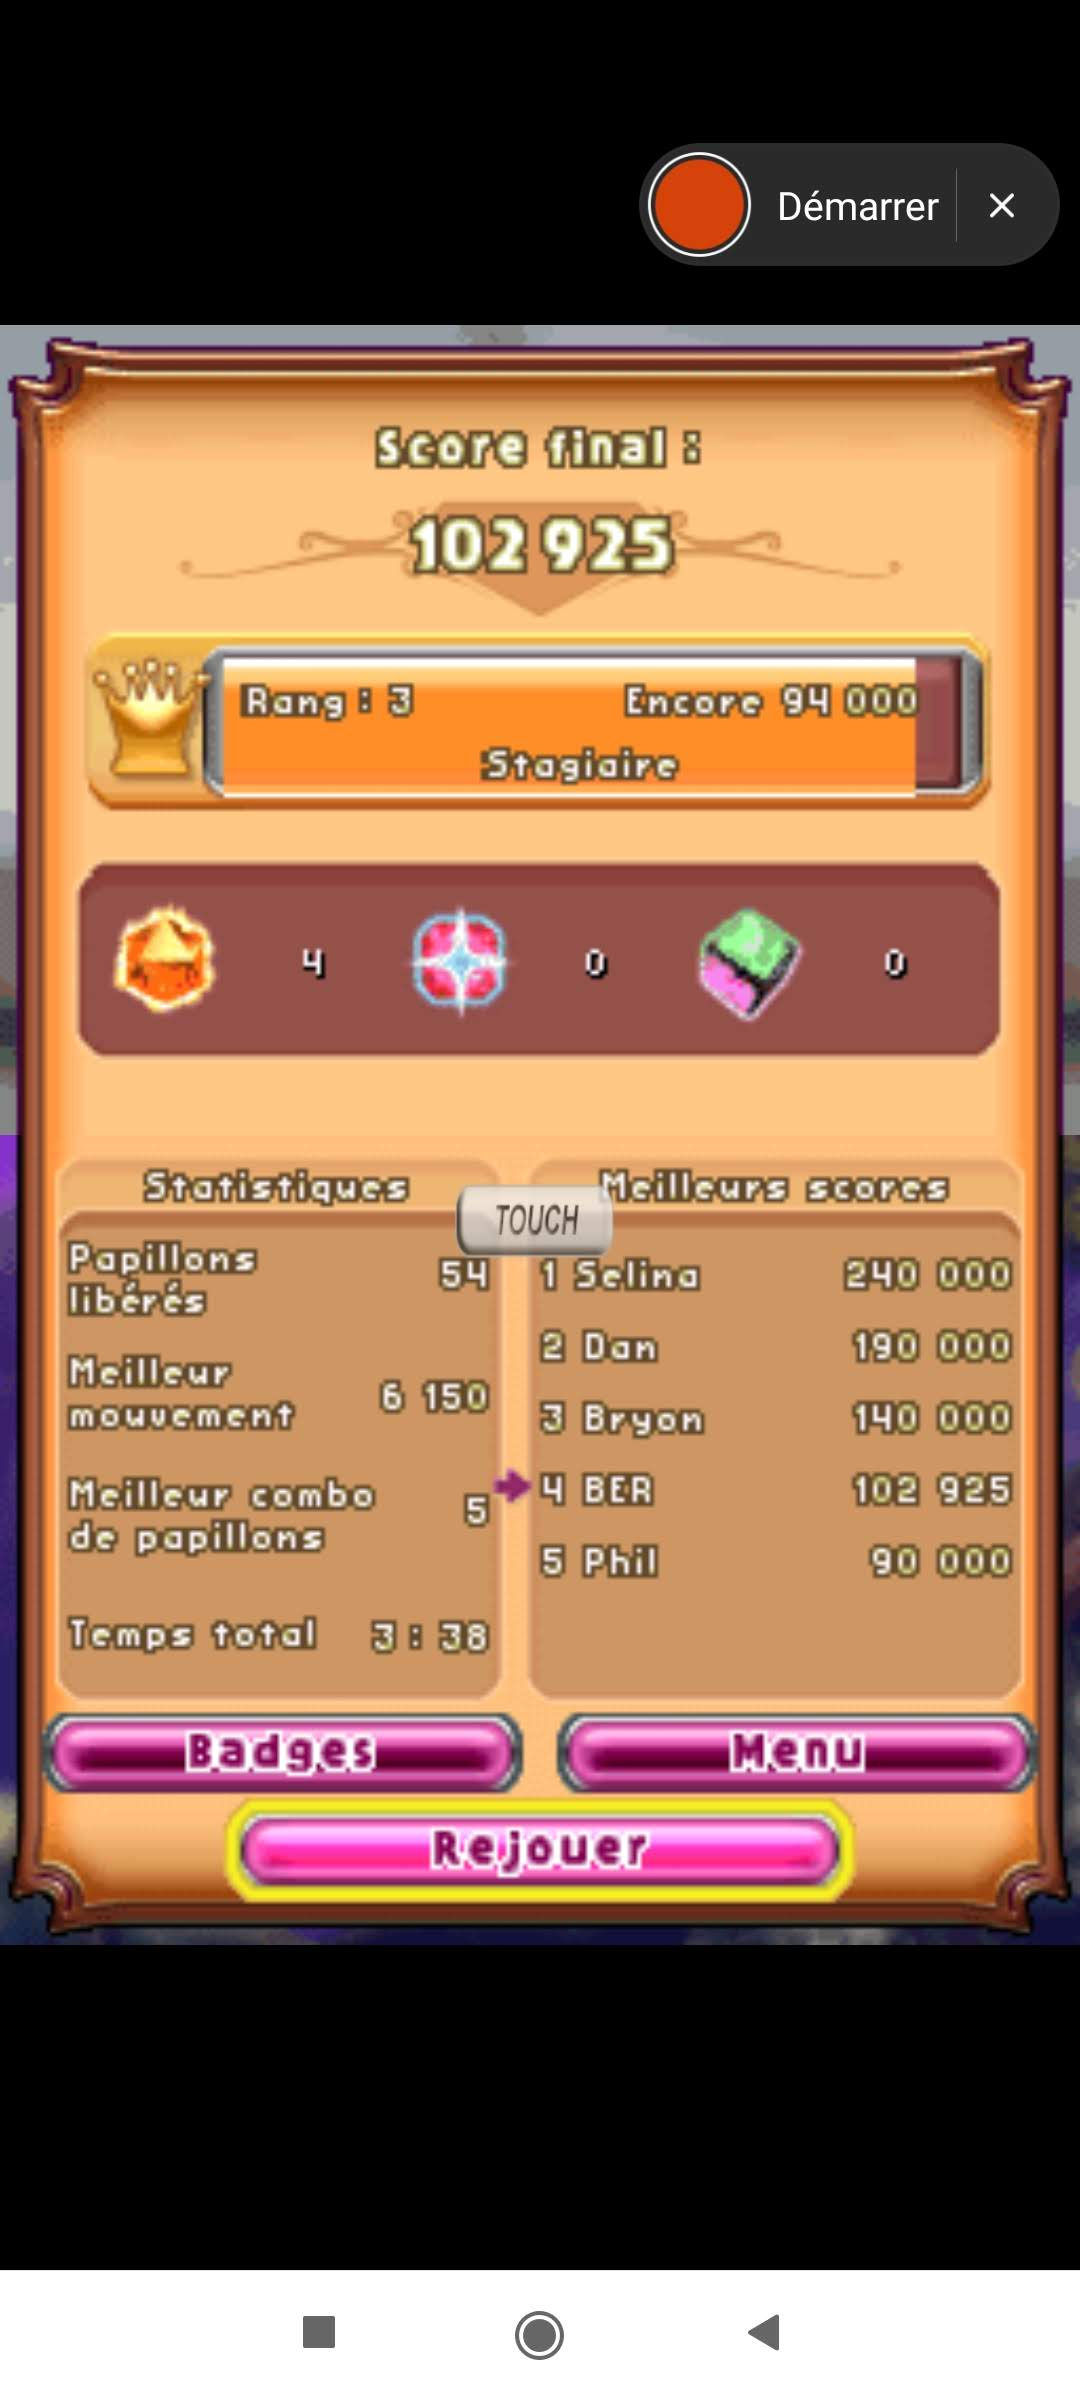 Larquey: Bejeweled 3: Butterflies [Number of Flame Gems] (Nintendo DS Emulated) 4 points on 2020-09-27 04:26:57